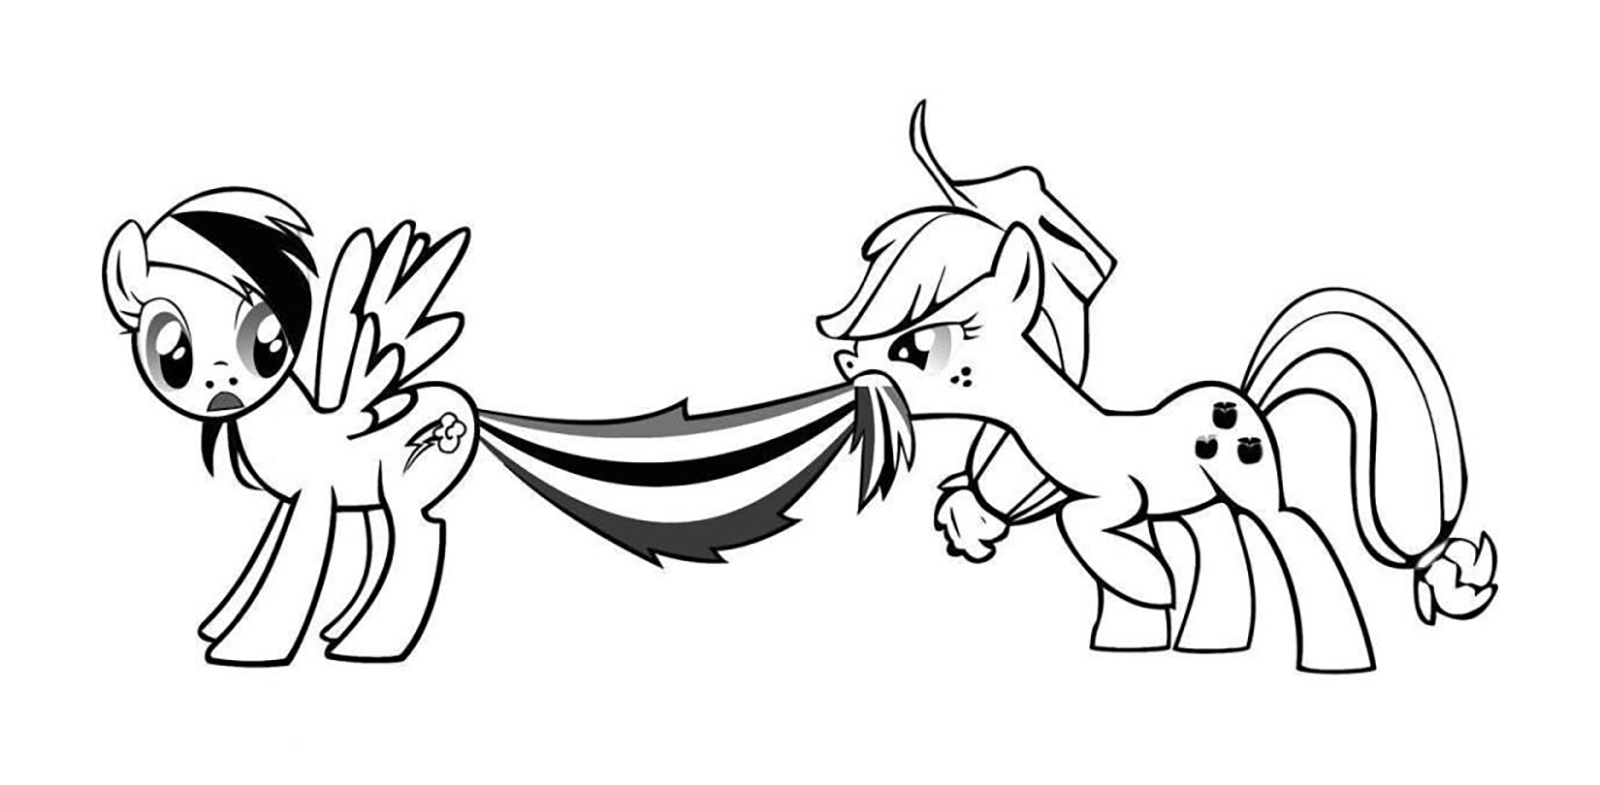 rainbow coloring page - applejack pulls the tail of rainbow dash